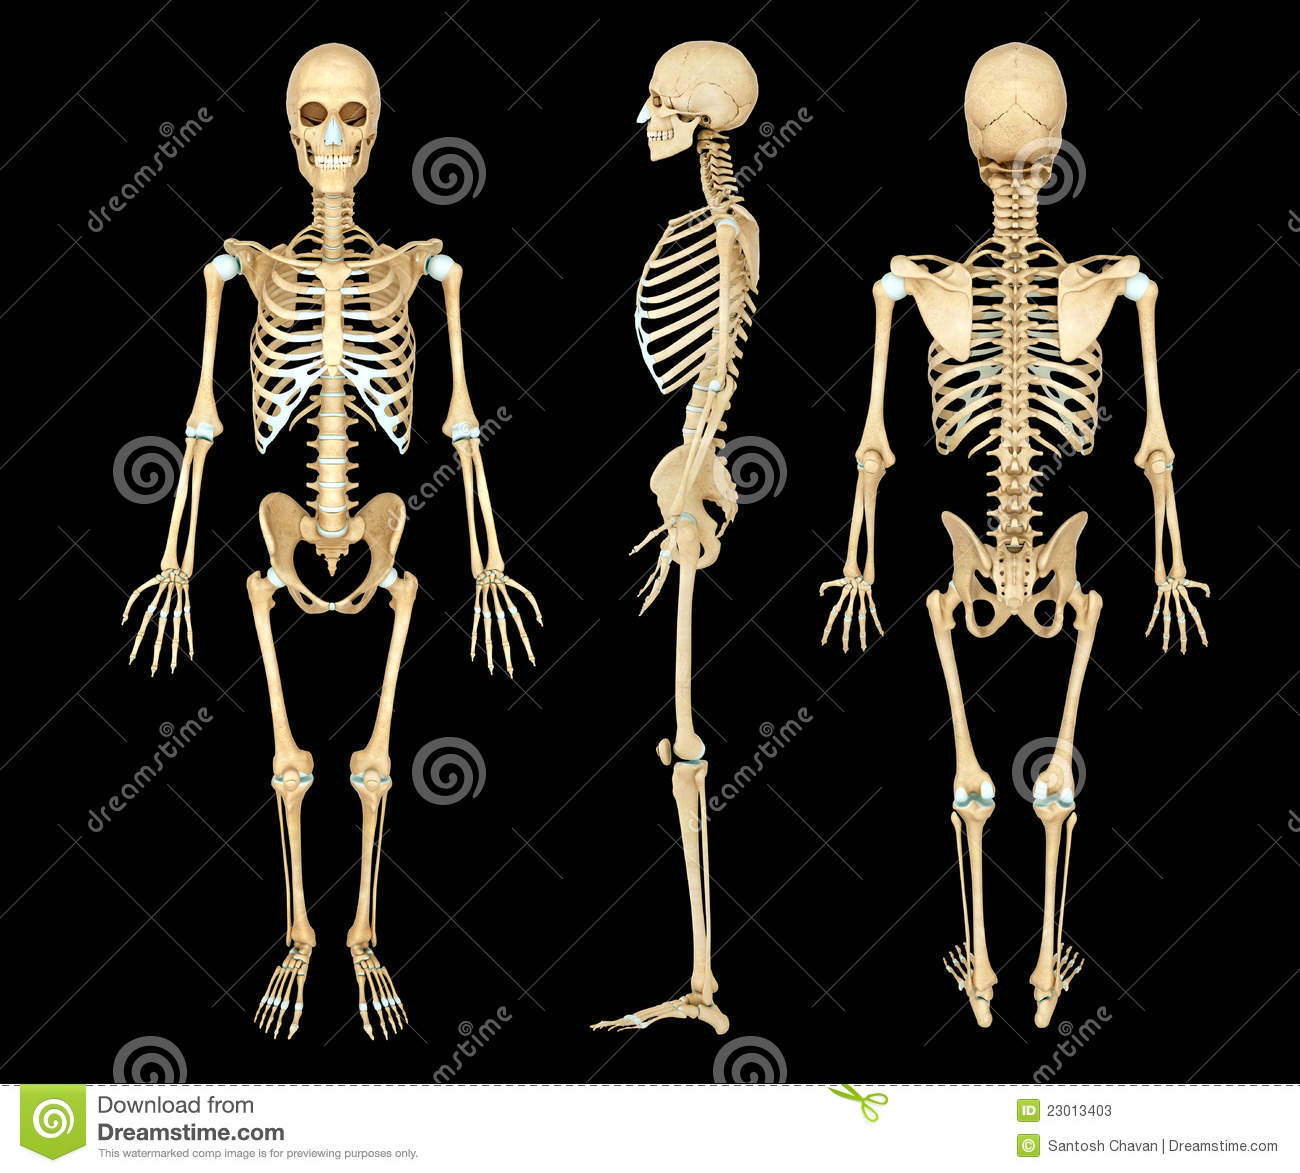 Stock Photos: Anatomy illustration of a human skeleton ...